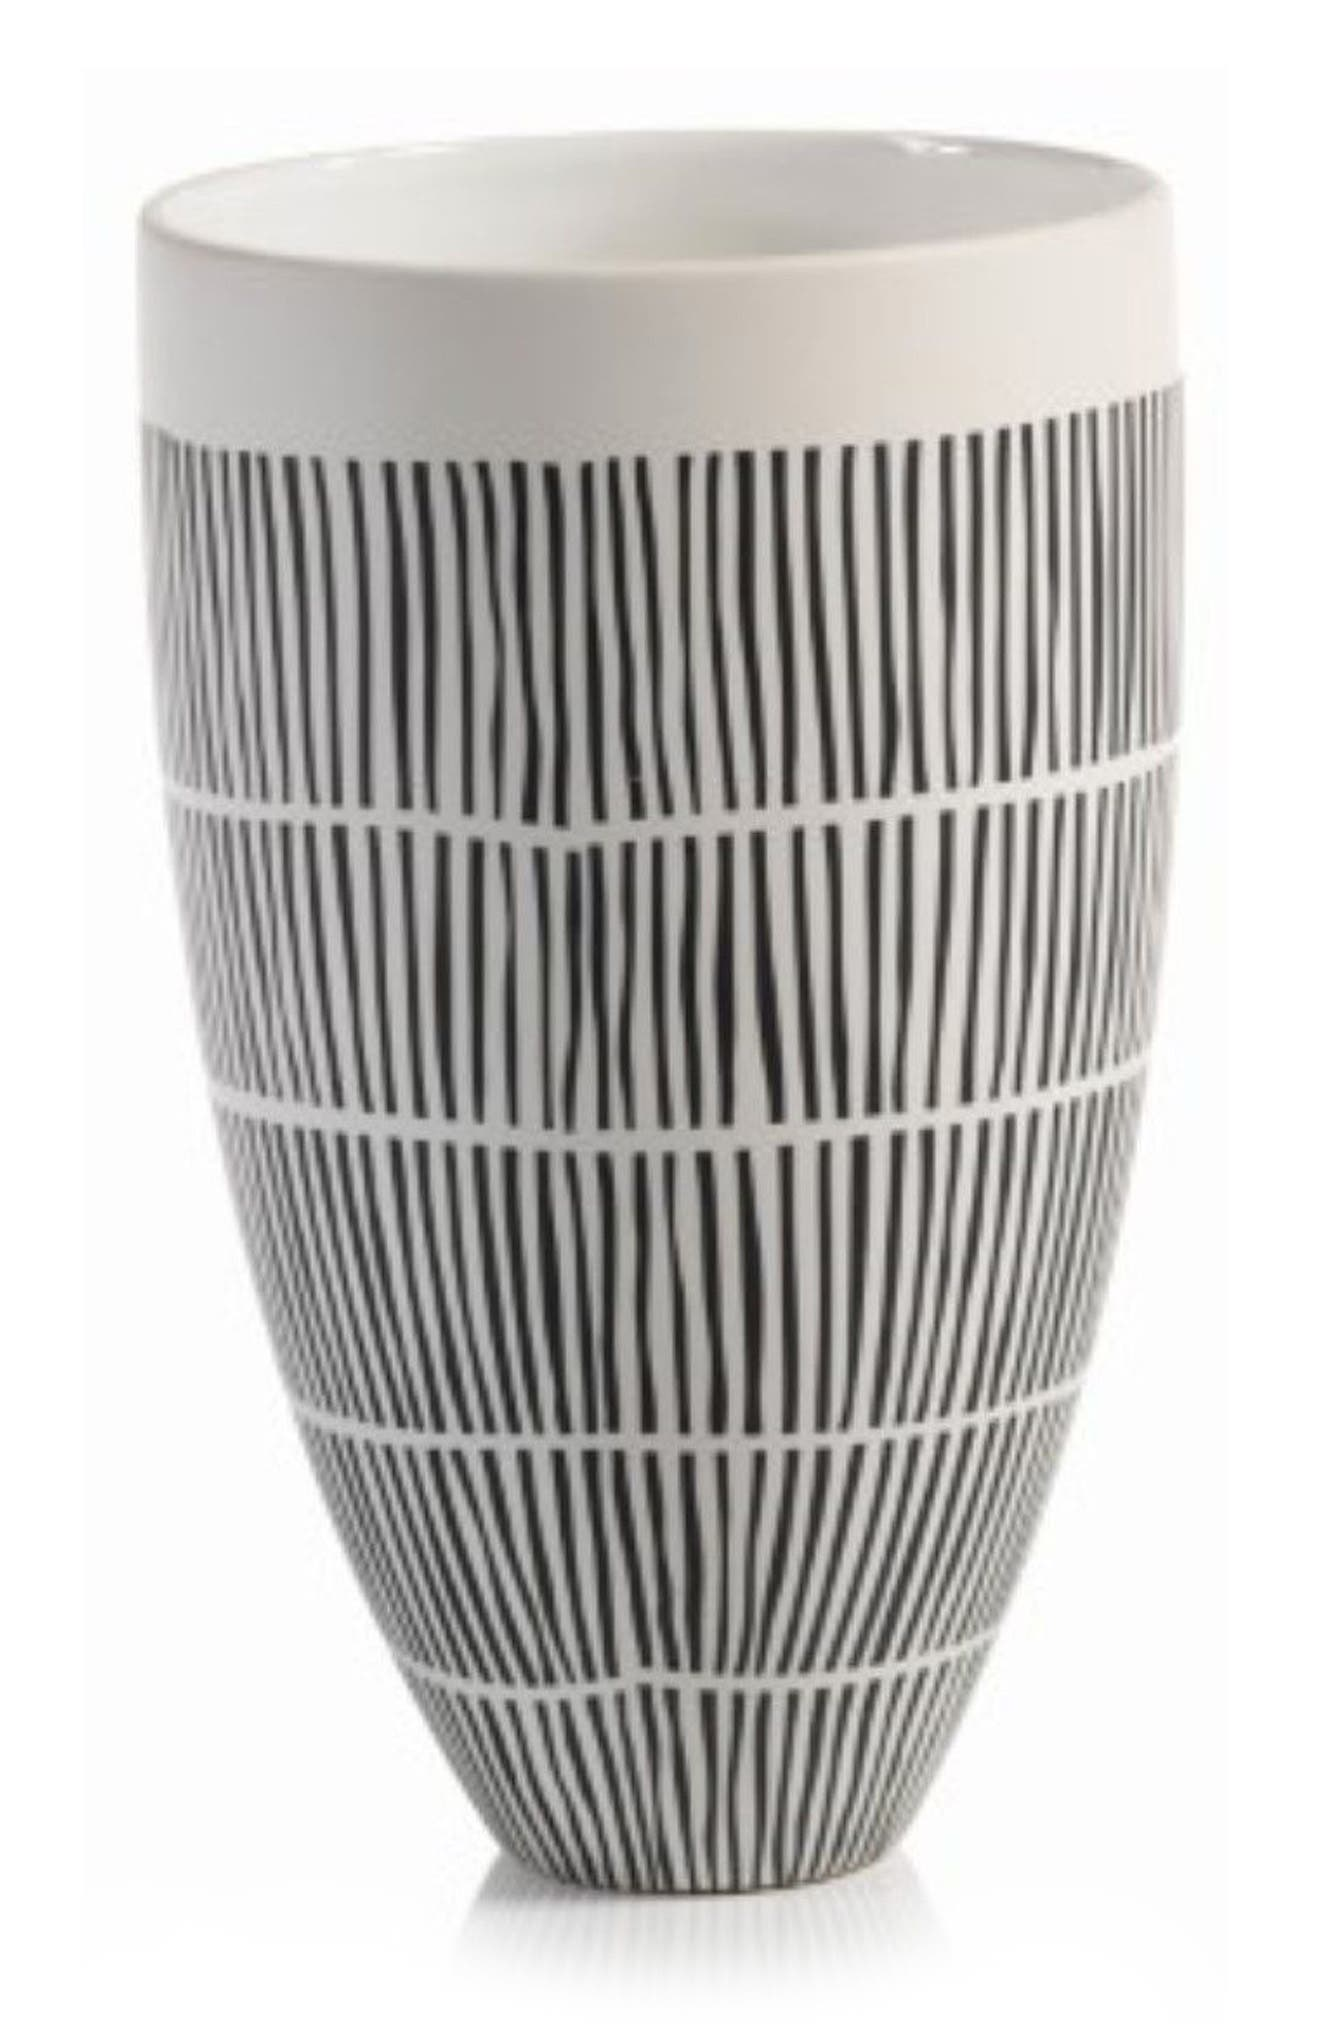 Marquesa Ceramic Vase,                             Main thumbnail 1, color,                             100